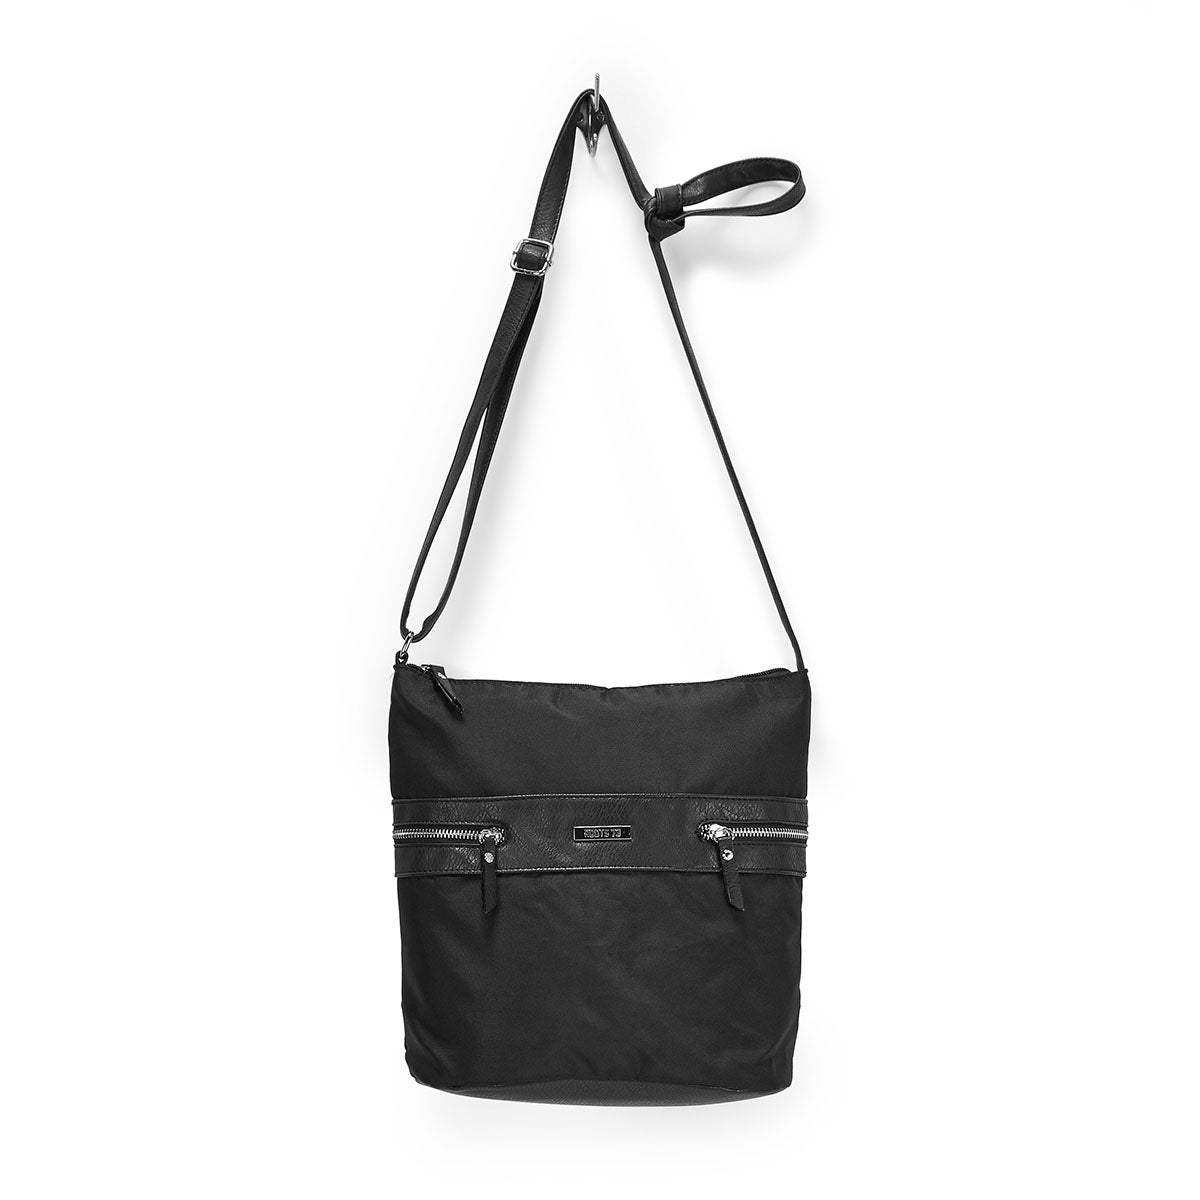 Lds Roots73 blk pebble hobo bag